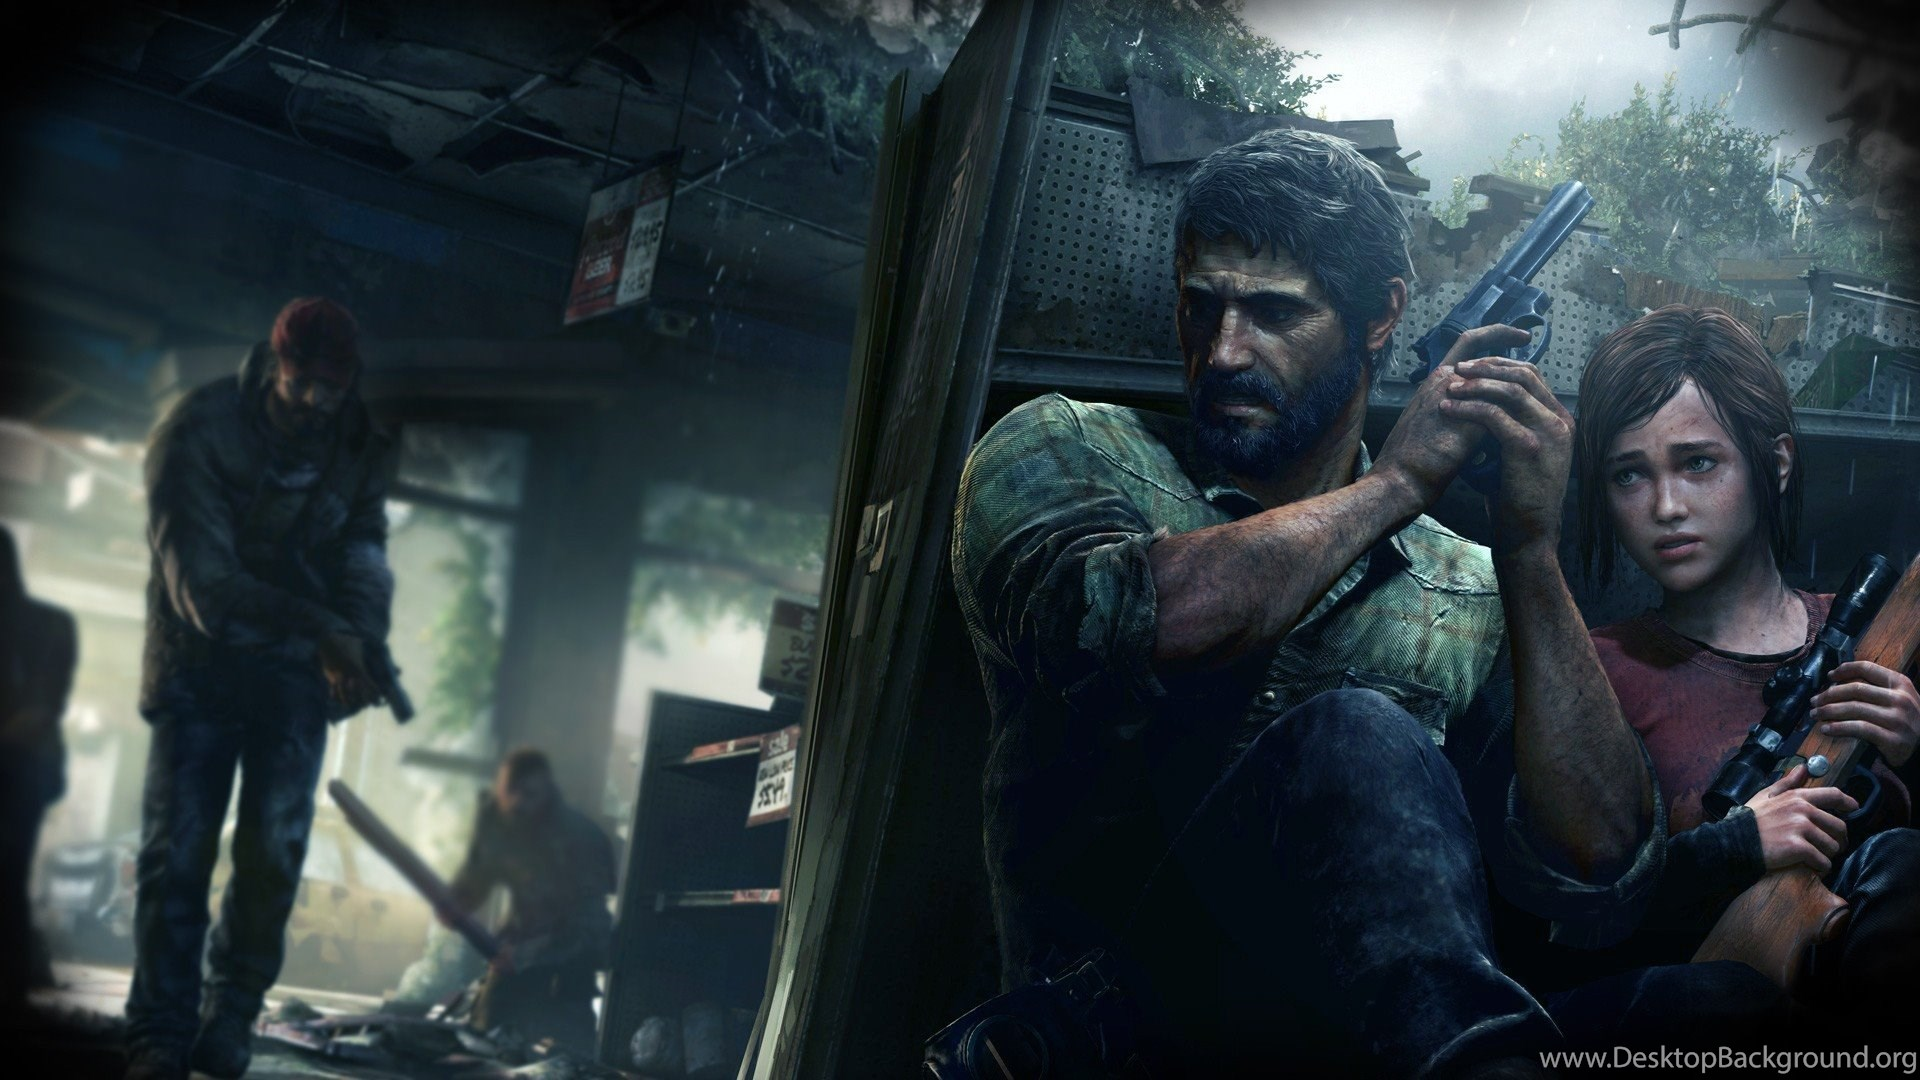 The Last Of Us Hd Wallpapers And Backgrounds Desktop Background